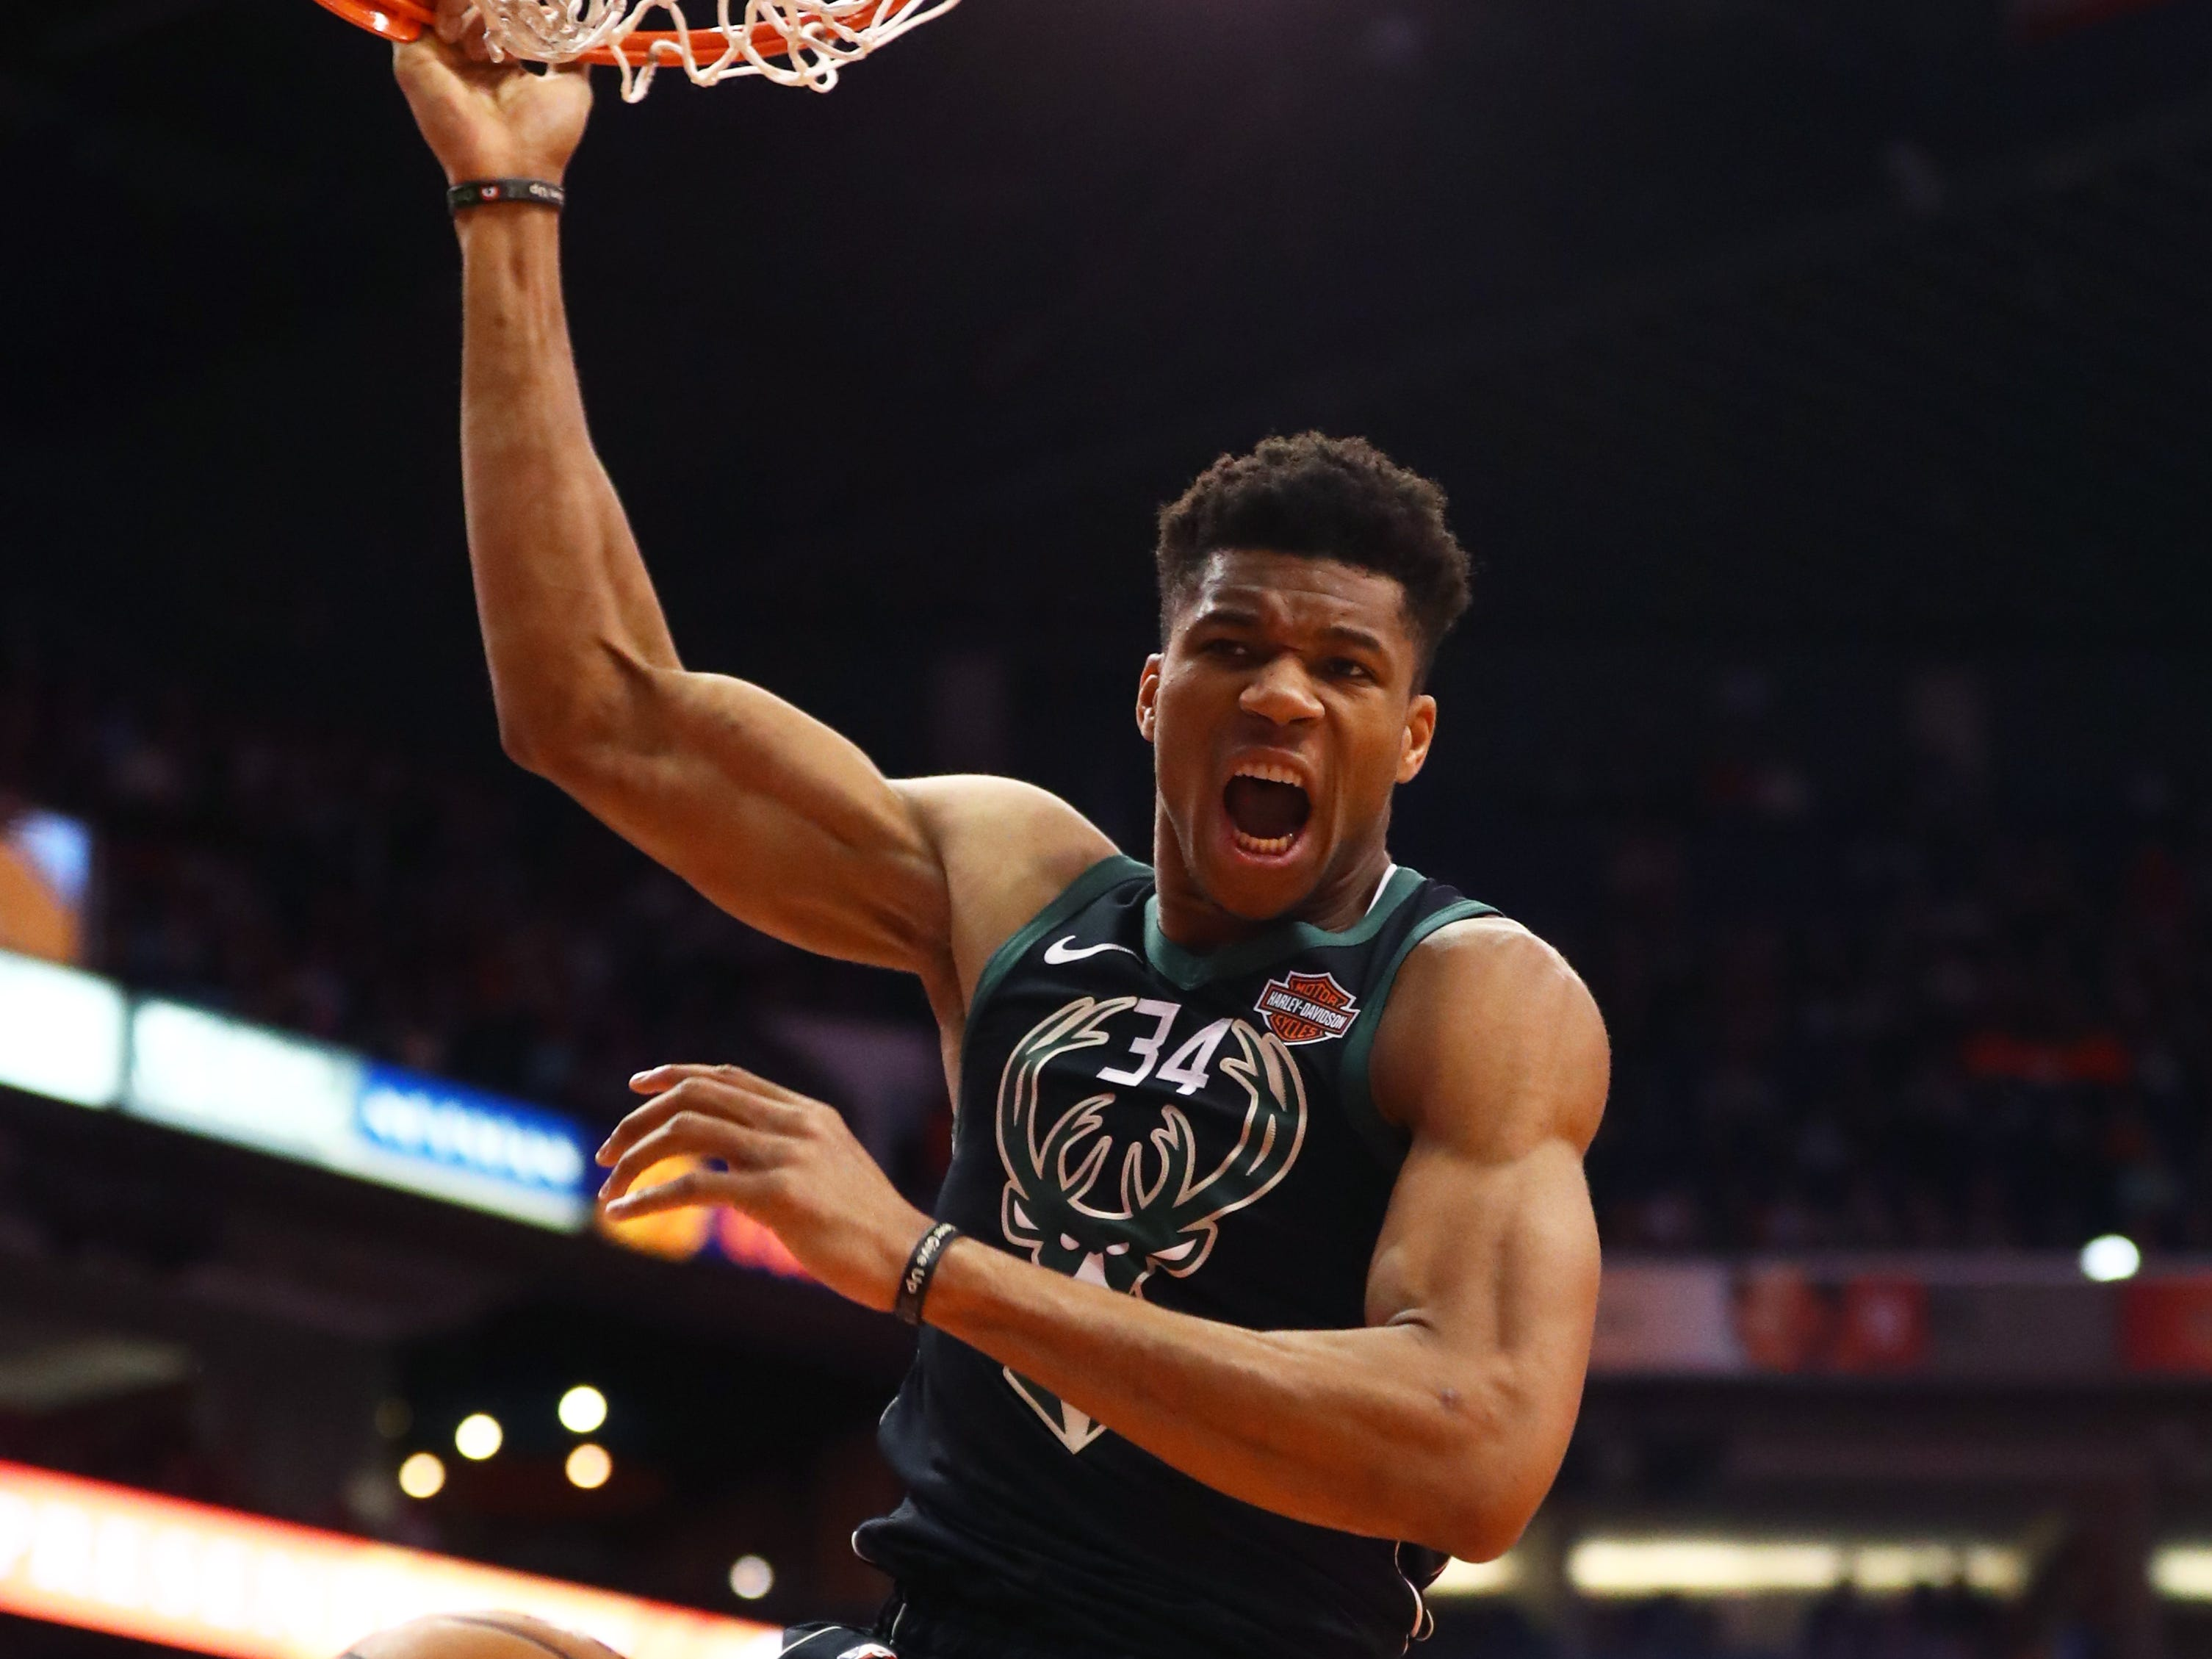 March 4: Milwaukee Bucks forward Giannis Antetokounmpo (34) reacts as he slam dunks the ball against the Phoenix Suns in the first half at Talking Stick Resort Arena.